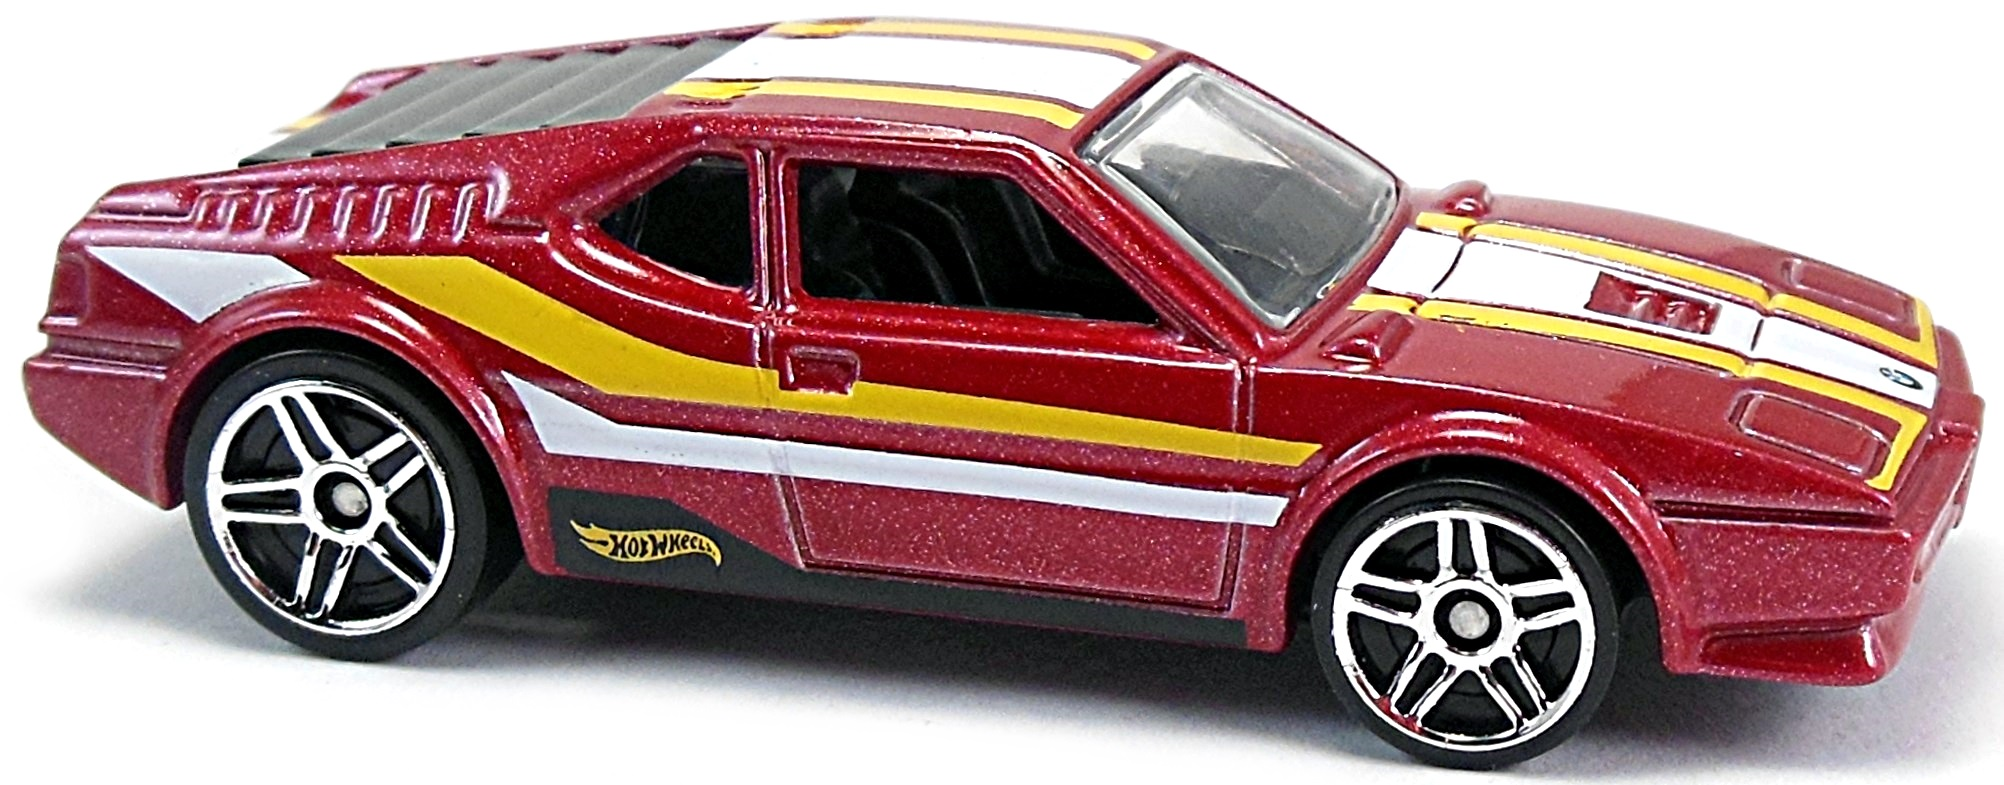 2016 Bmw Series Hot Wheels Newsletter